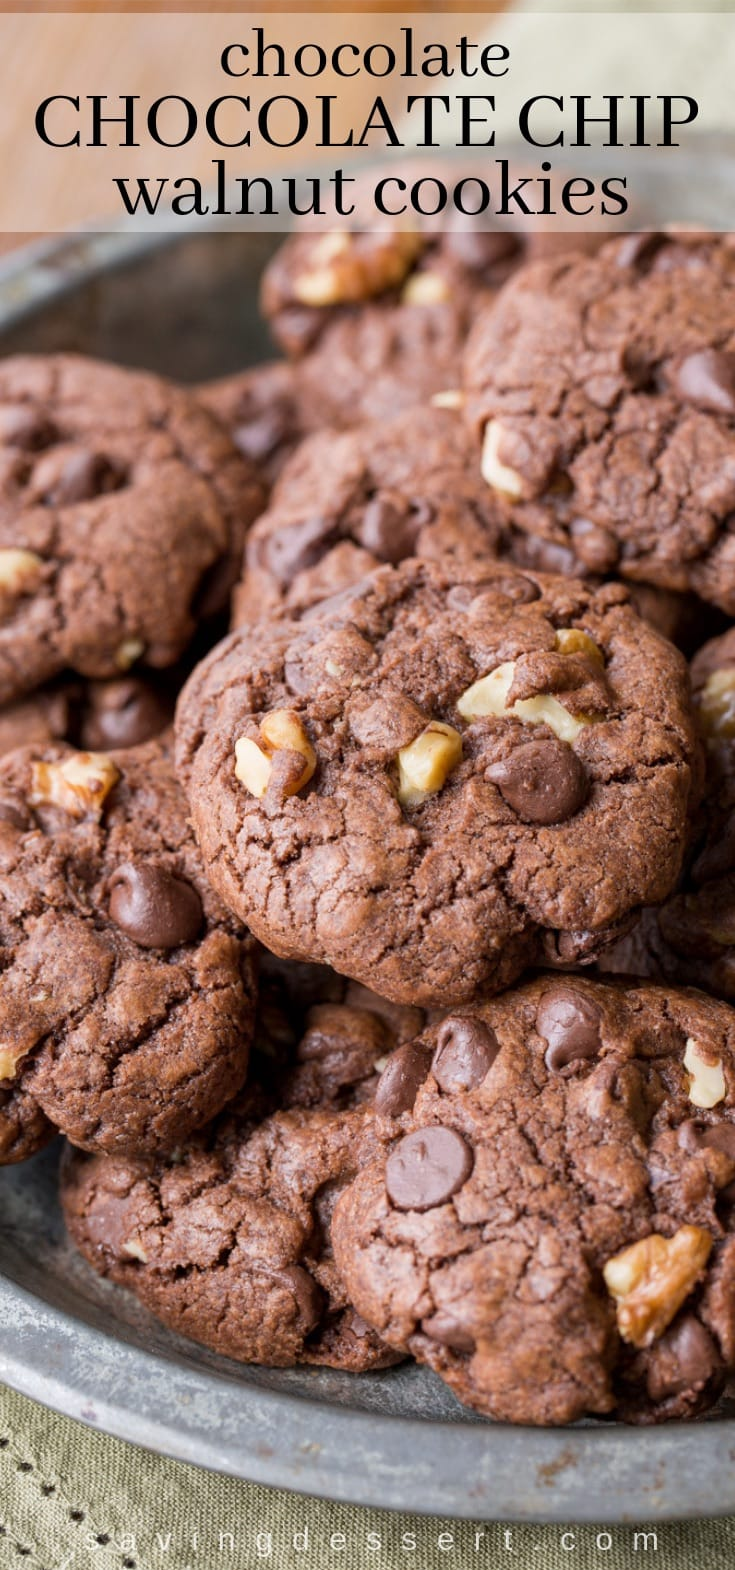 Thick and chewy Chocolate Chocolate-Chip Walnut Cookies have crispy edges, a soft almost brownie-like middle, and are loaded with big chunks of walnuts. #chocolatecookies #walnutcookies #cookies #chocolatechipcookie #chocolatechocolatechipcookie #chocolatewalnutcookie #easycookie